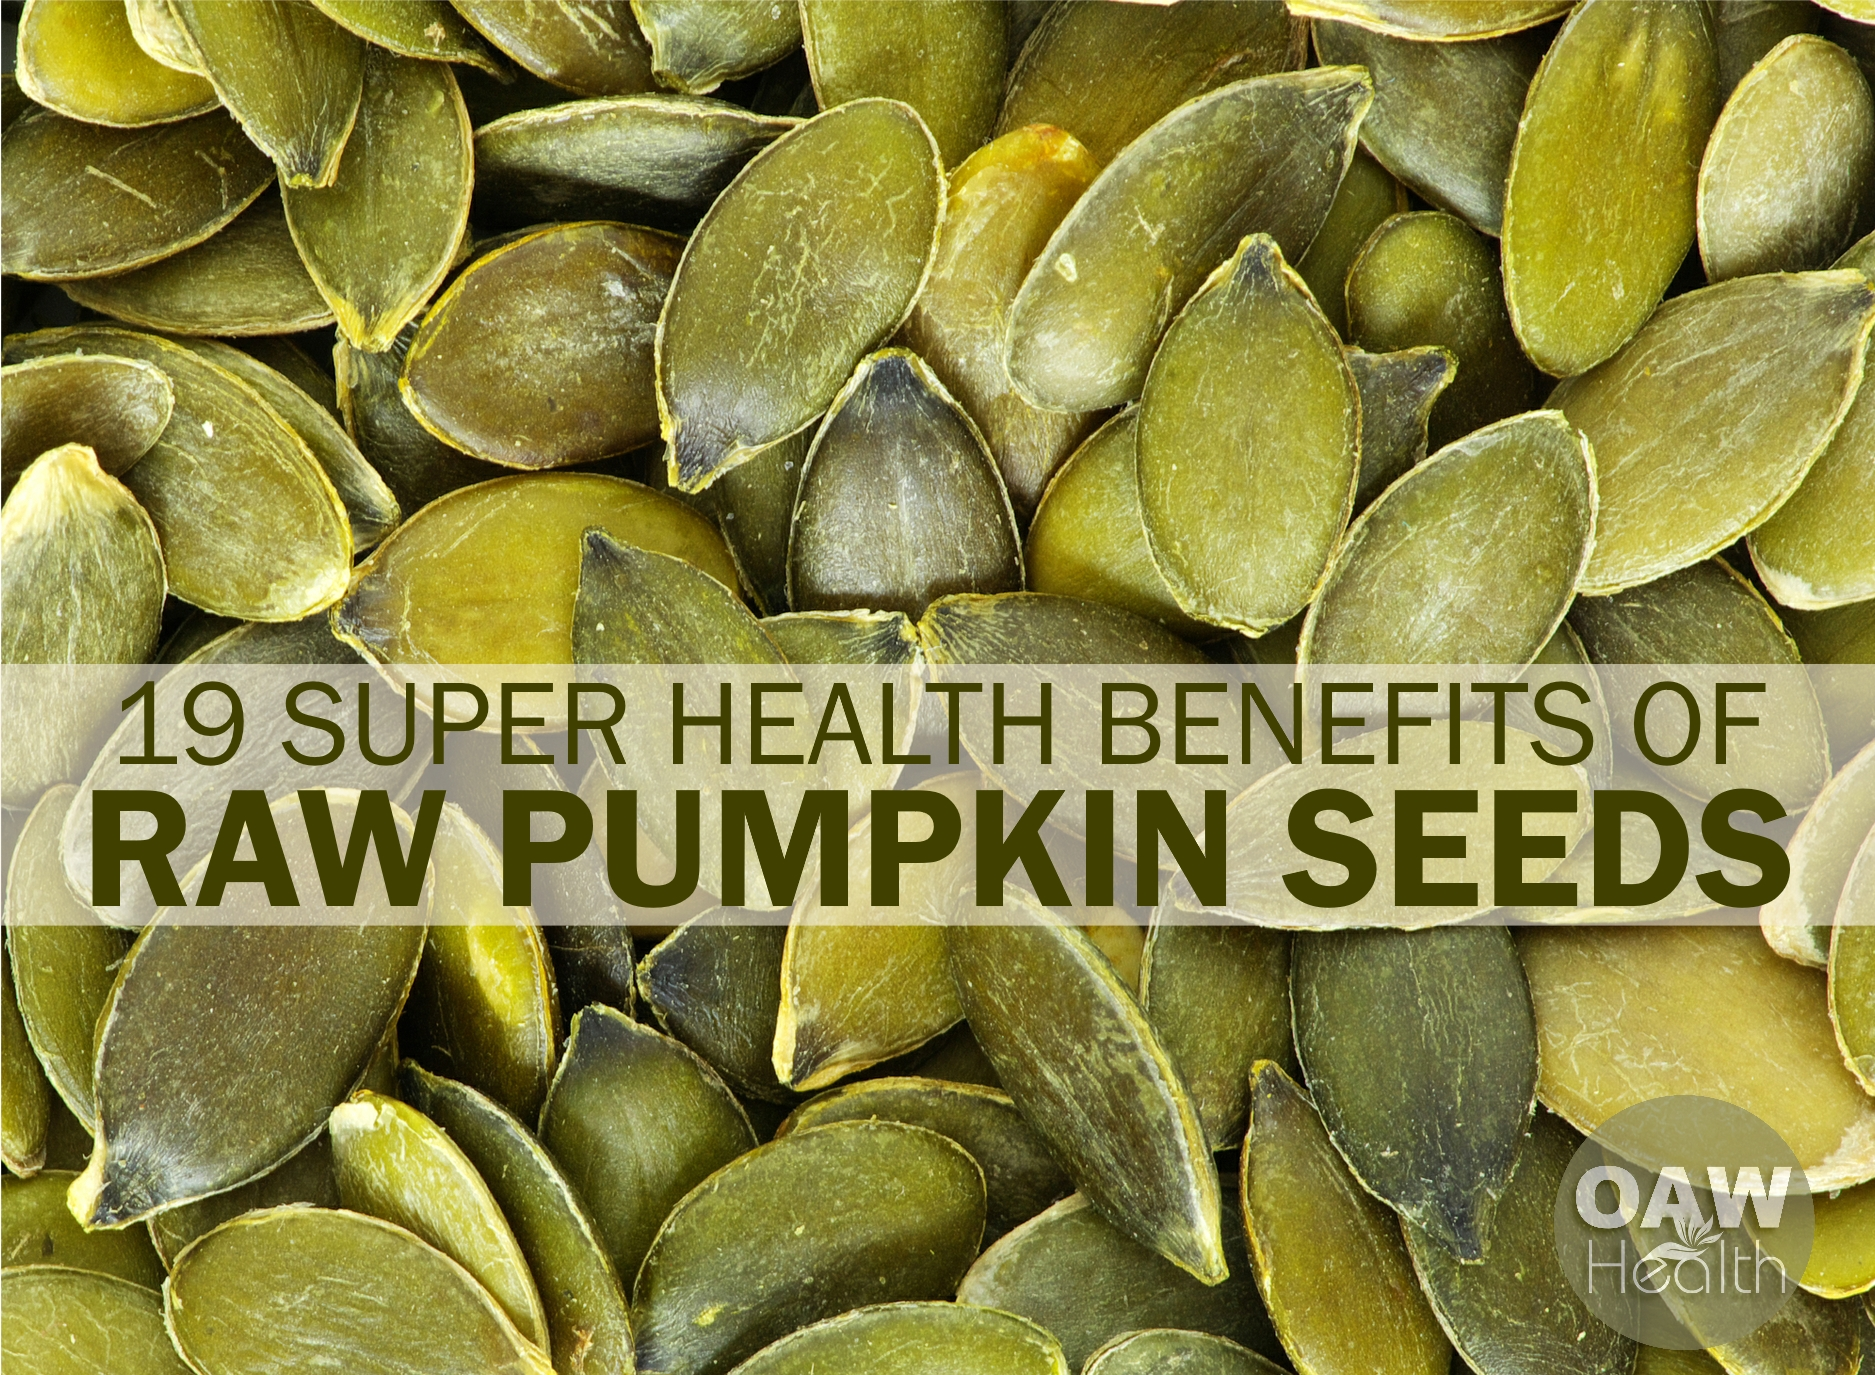 19 Super Health Benefits of Raw Pumpkin Seeds